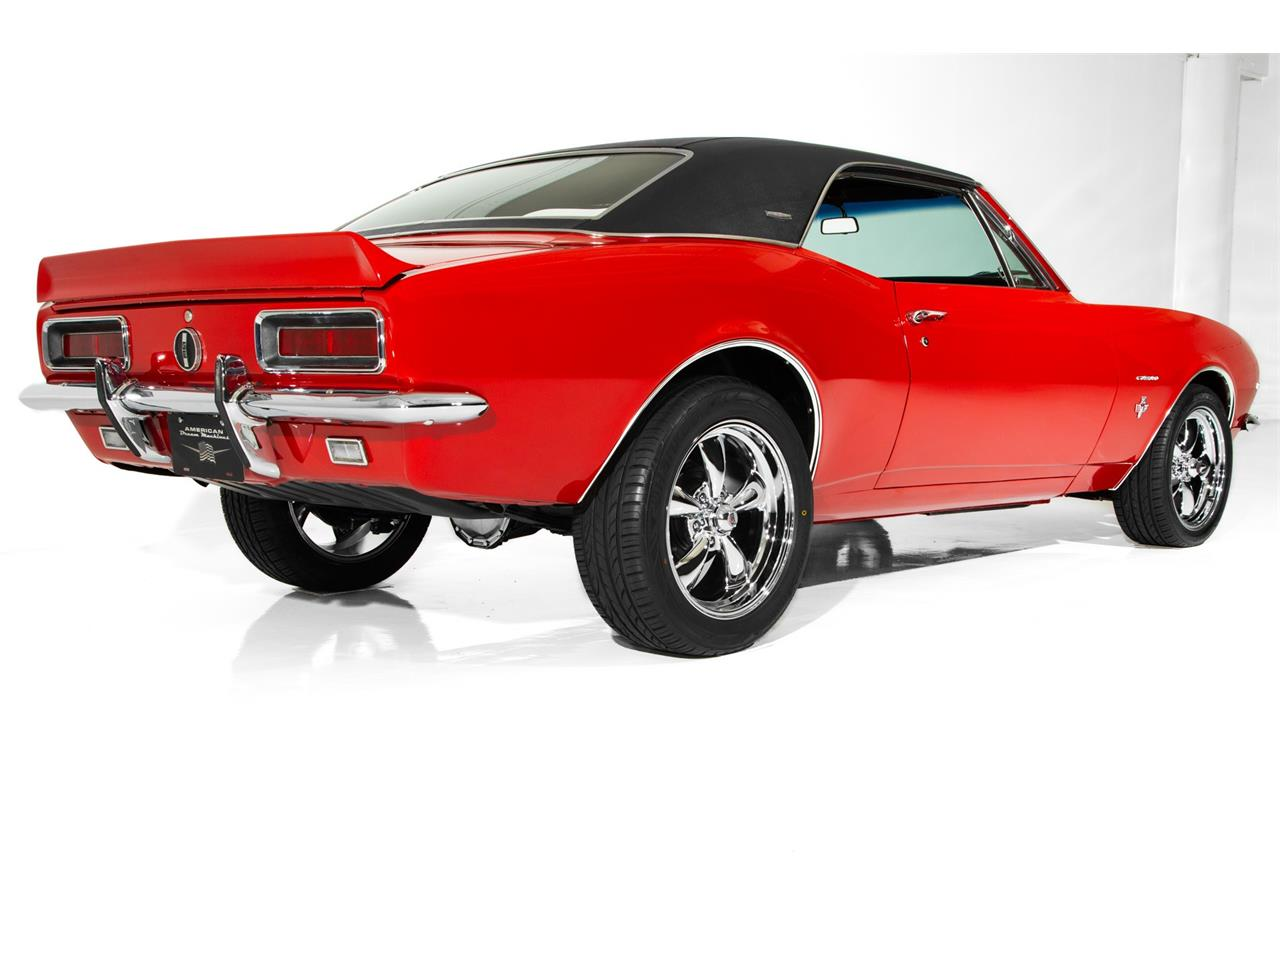 Large Picture of '67 Chevrolet Camaro located in Des Moines Iowa - $52,900.00 Offered by American Dream Machines - QG0K